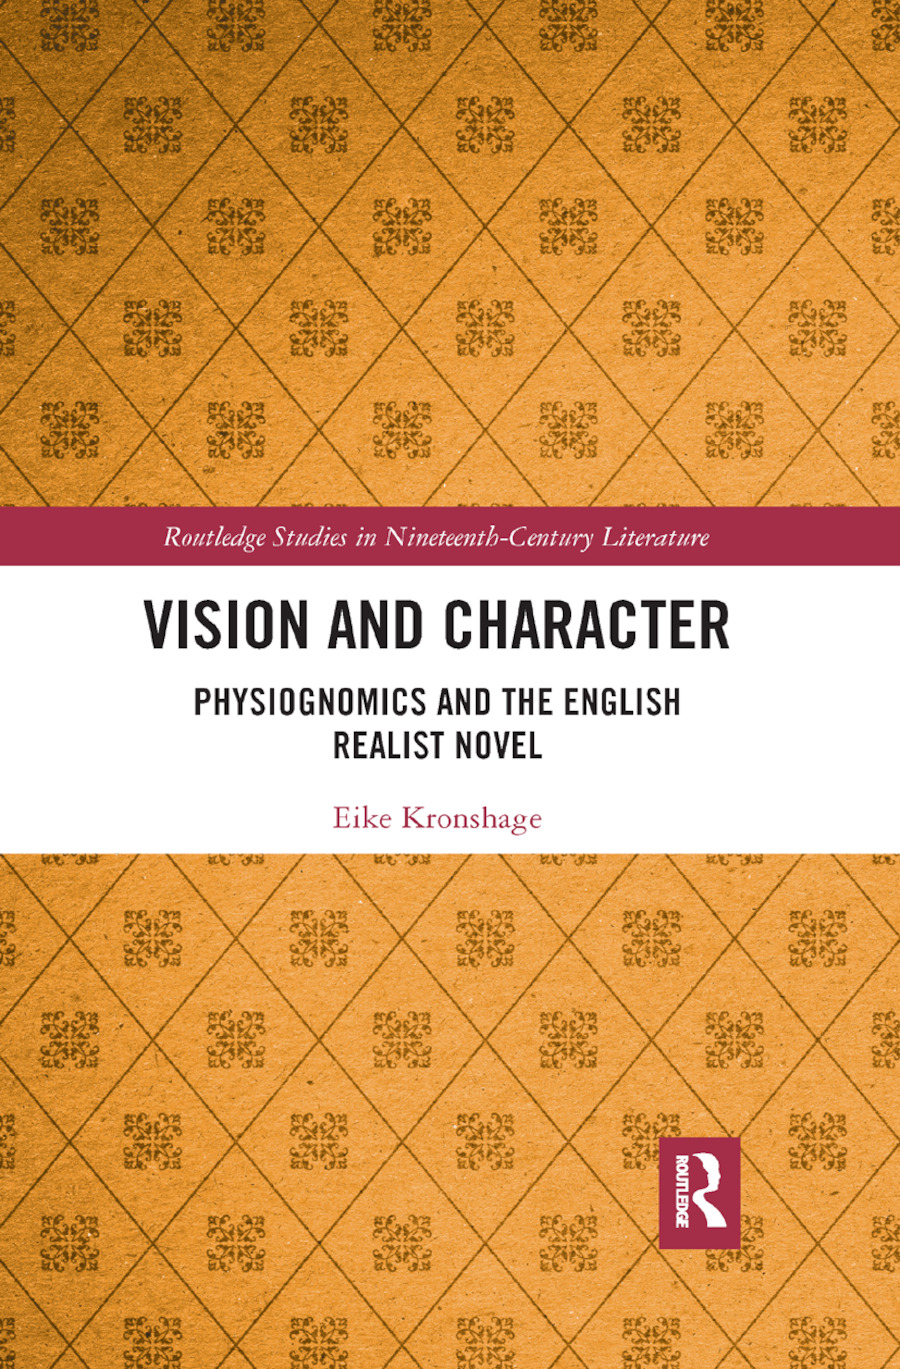 Vision and Character: Physiognomics and the English Realist Novel book cover